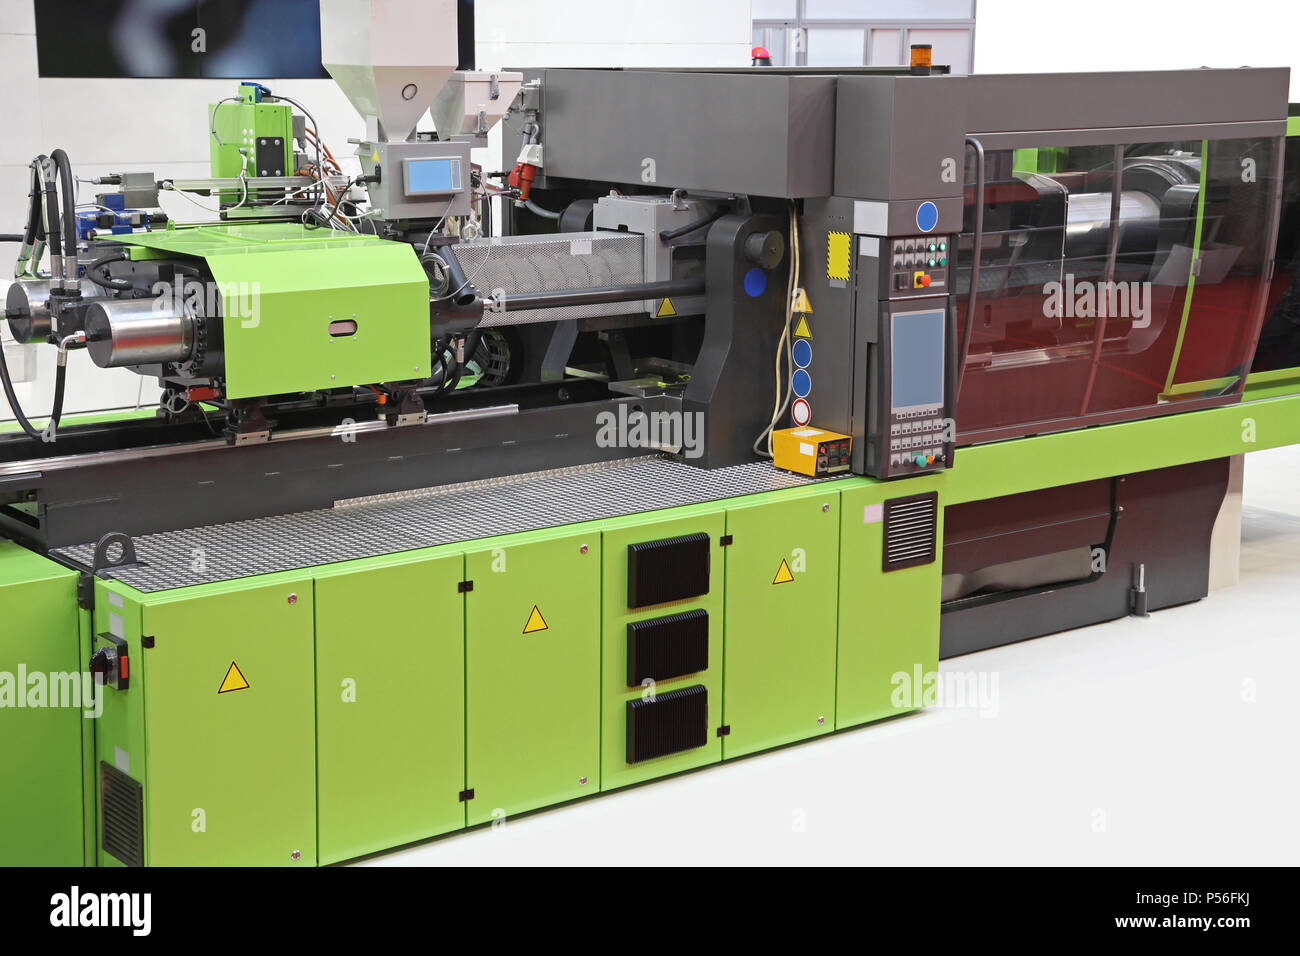 Injection Moulding Machine for Plastic Parts Production - Stock Image